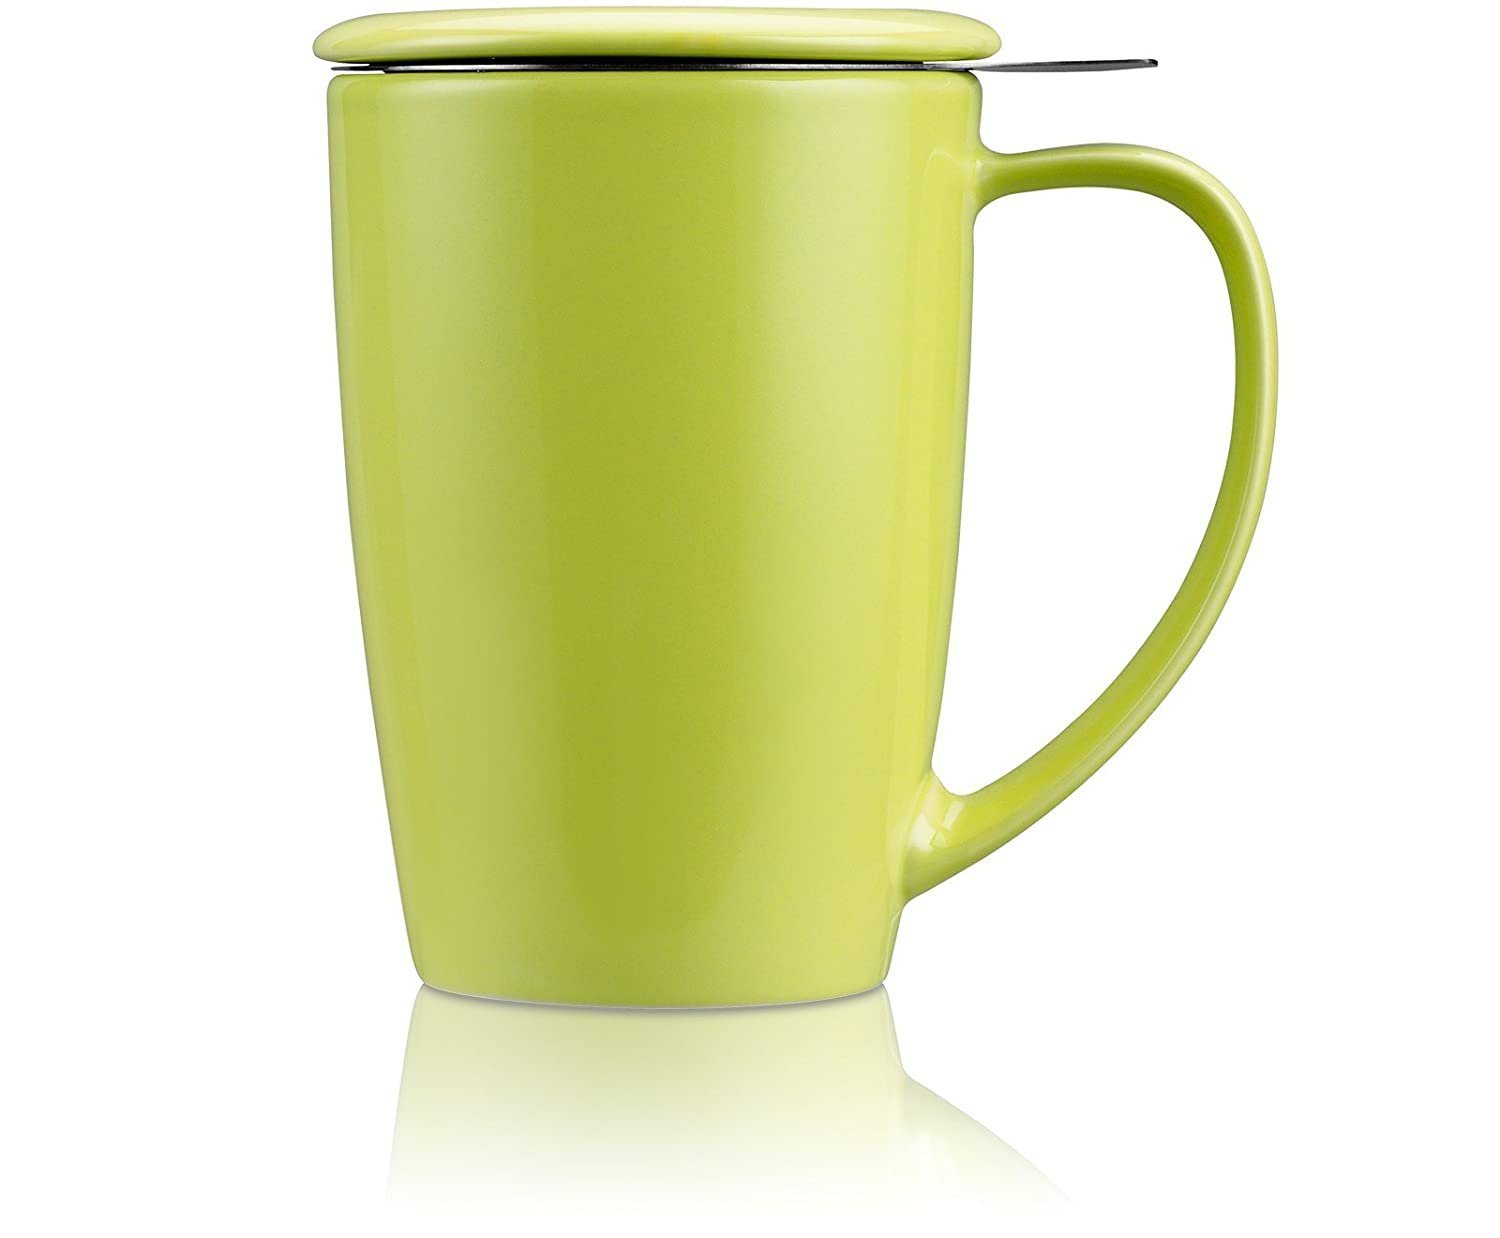 FORLIFE Mug with Strainer Curve 0.45 L Lime